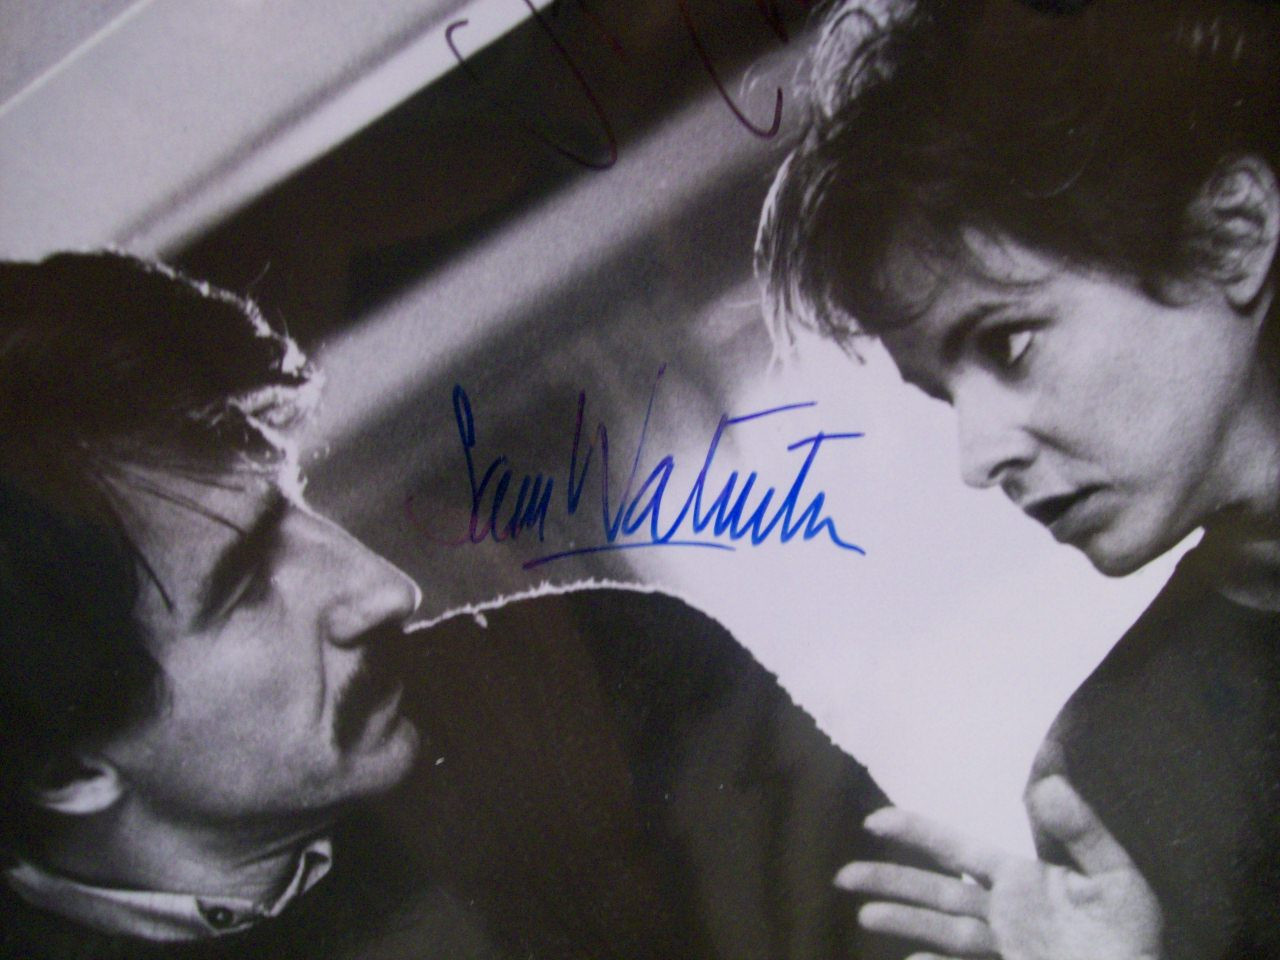 Waterson, Sam Stockard Channing Photo Signed Autograph The Room Upstairs 1987